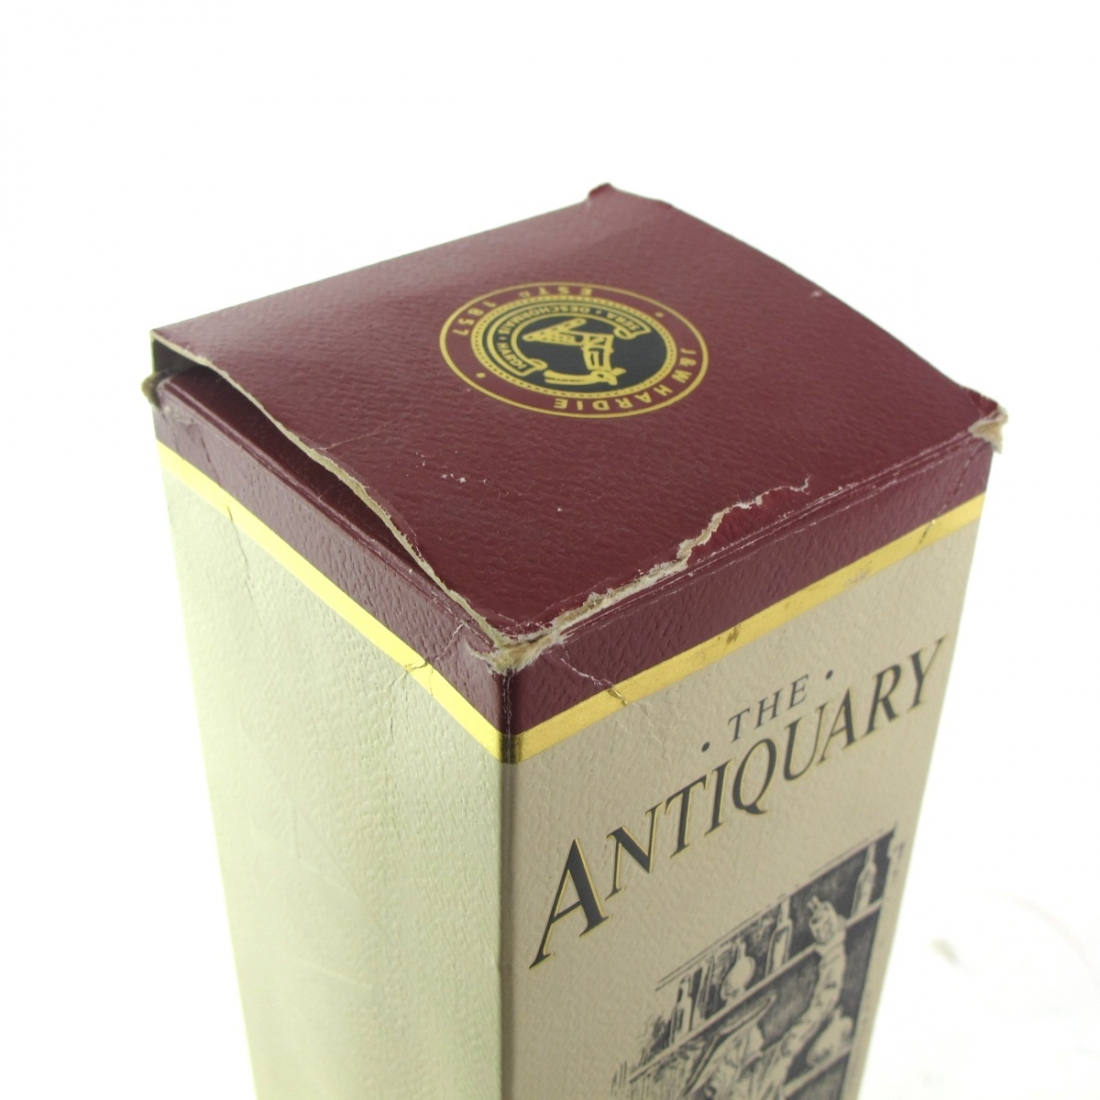 Antiquary 21 Year Old